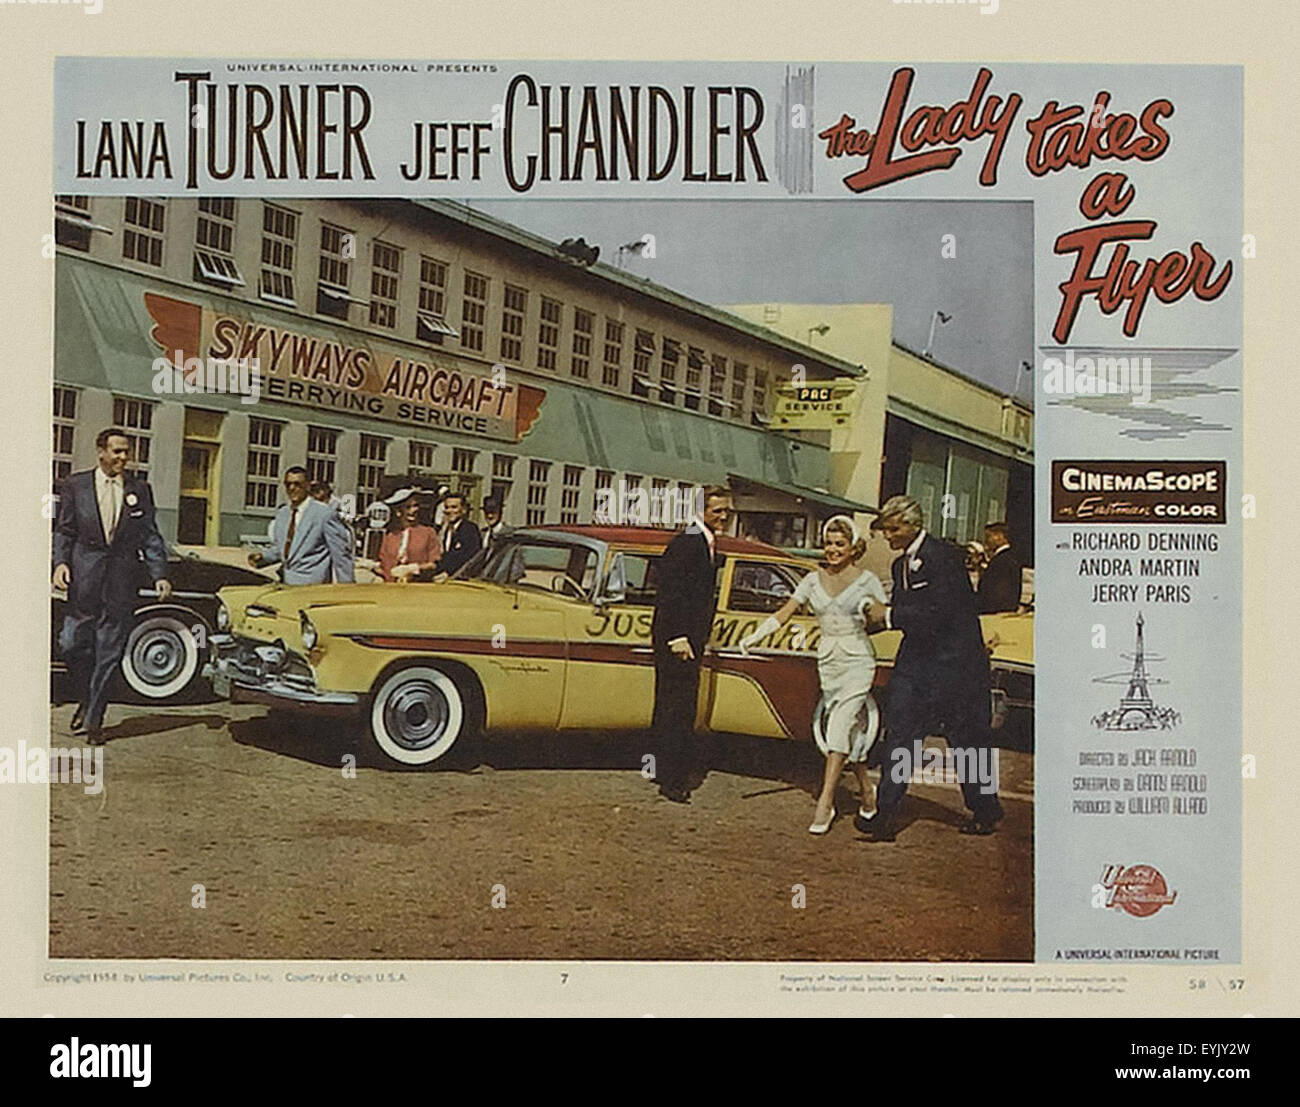 The Lady Takes a Flyer - Lana Turner - Movie Poster - Stock Image